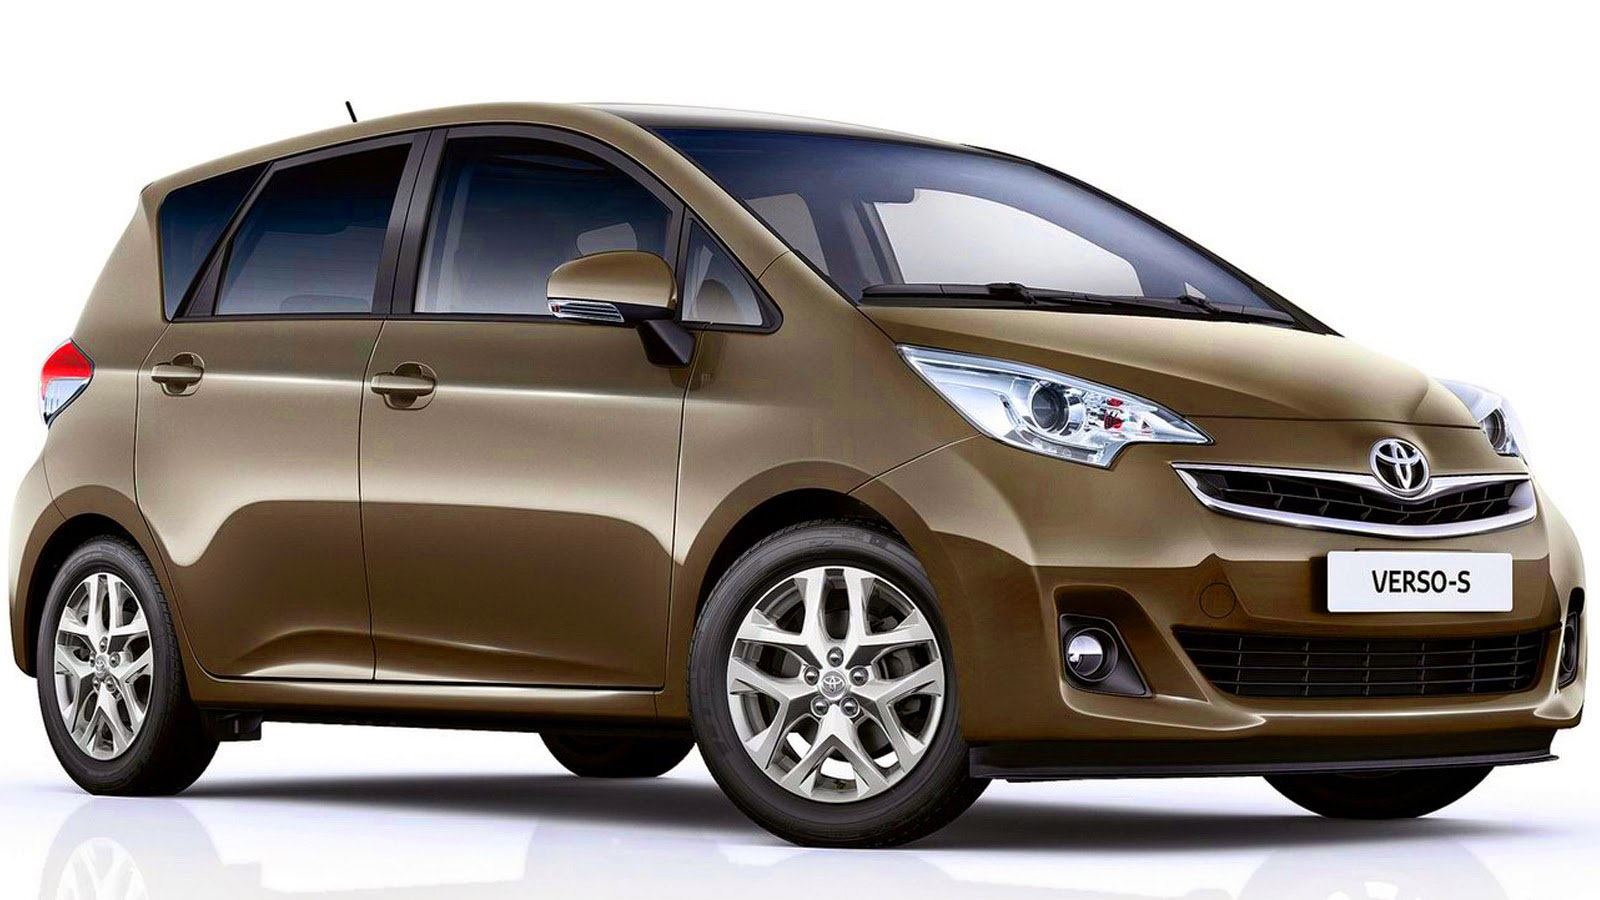 hight resolution of  2015 toyota verso s mpv 2 of 4